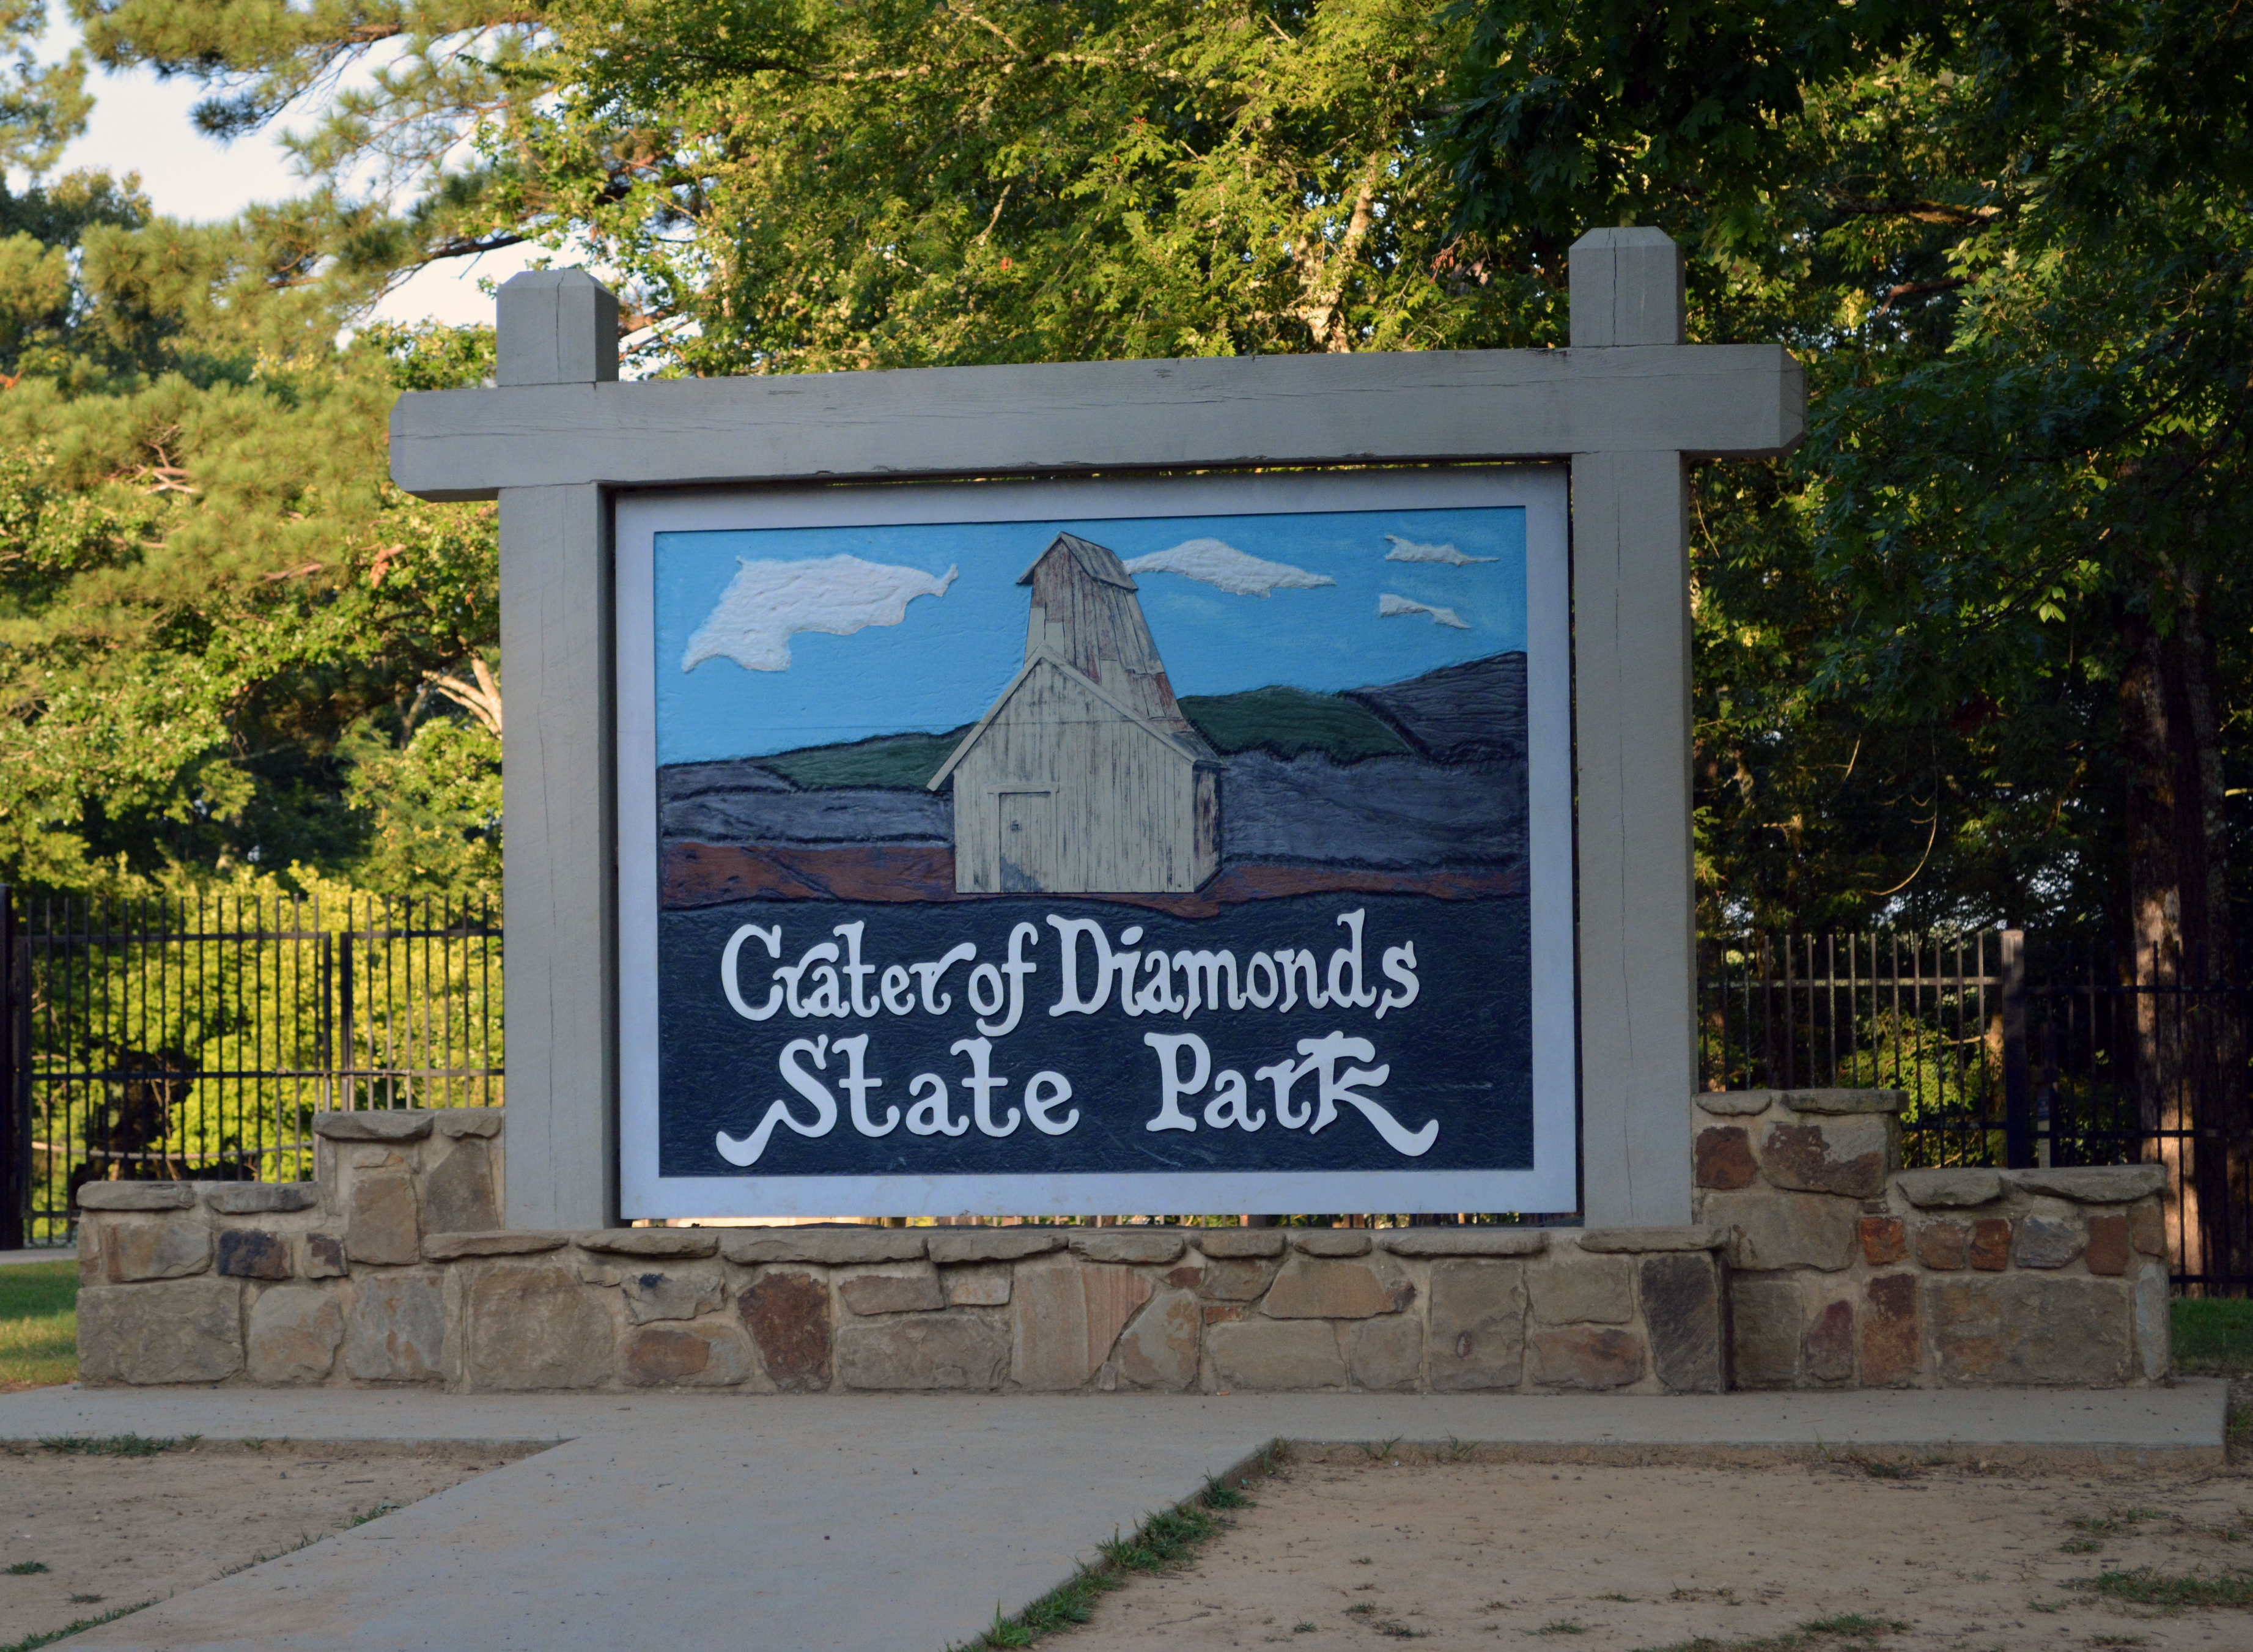 Crater of Diamonds State Park entrance signage.